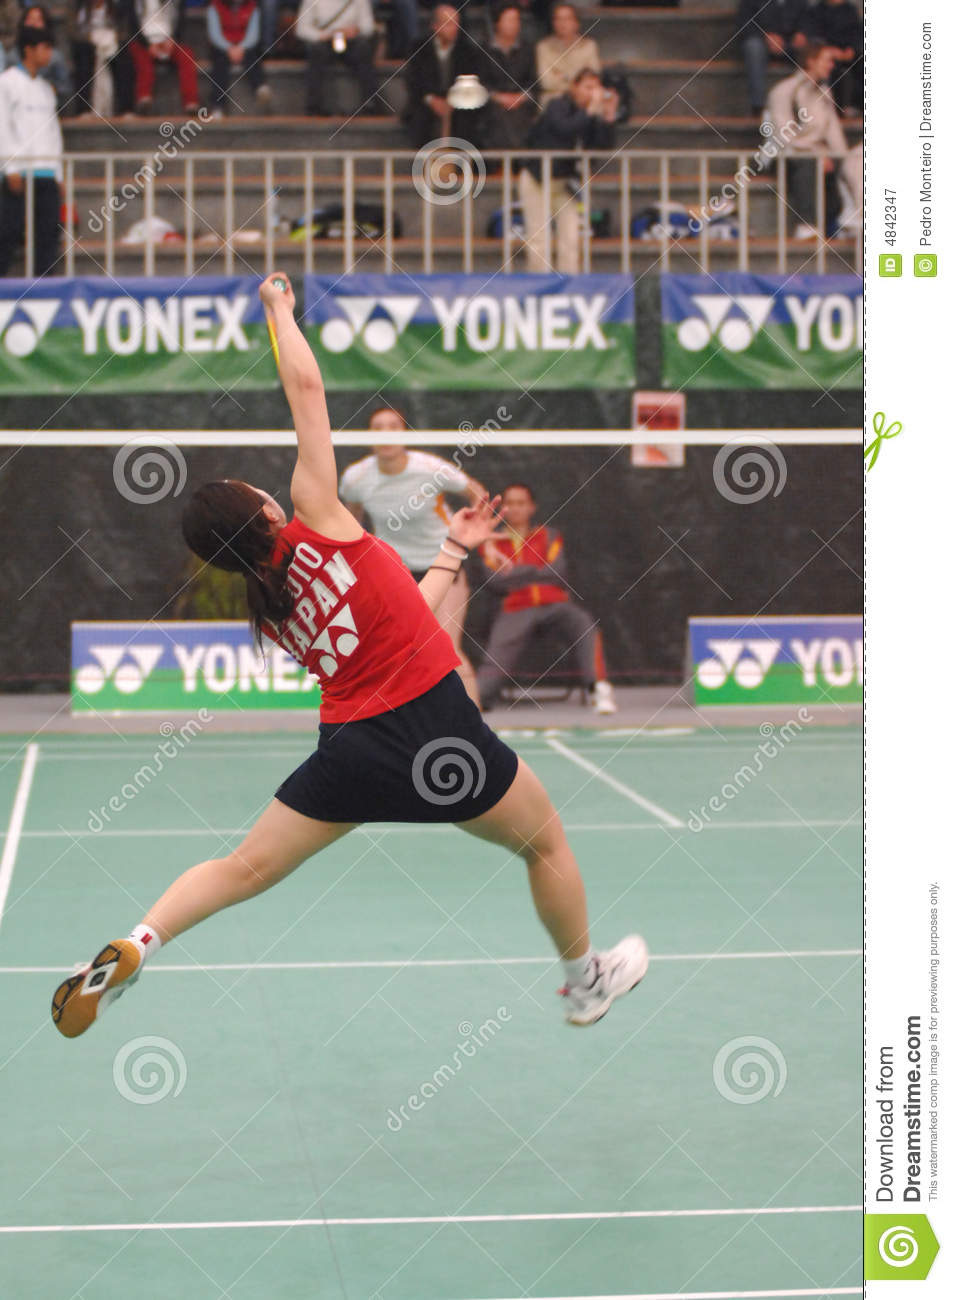 International badminton players